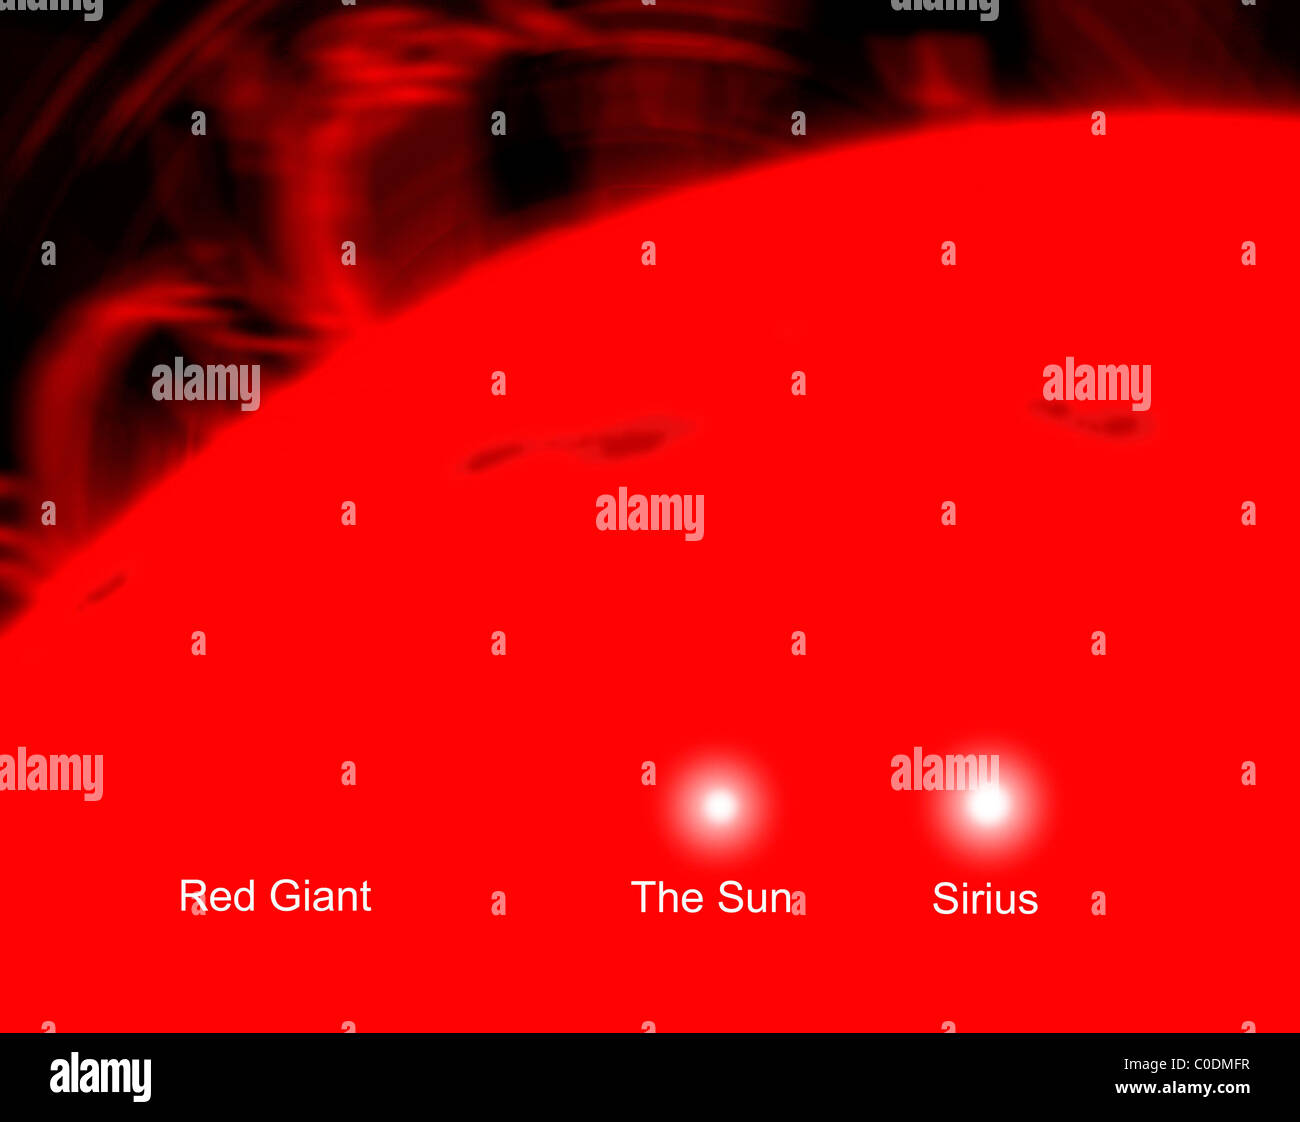 Our Sun and the star Sirius compared to a red giant. - Stock Image